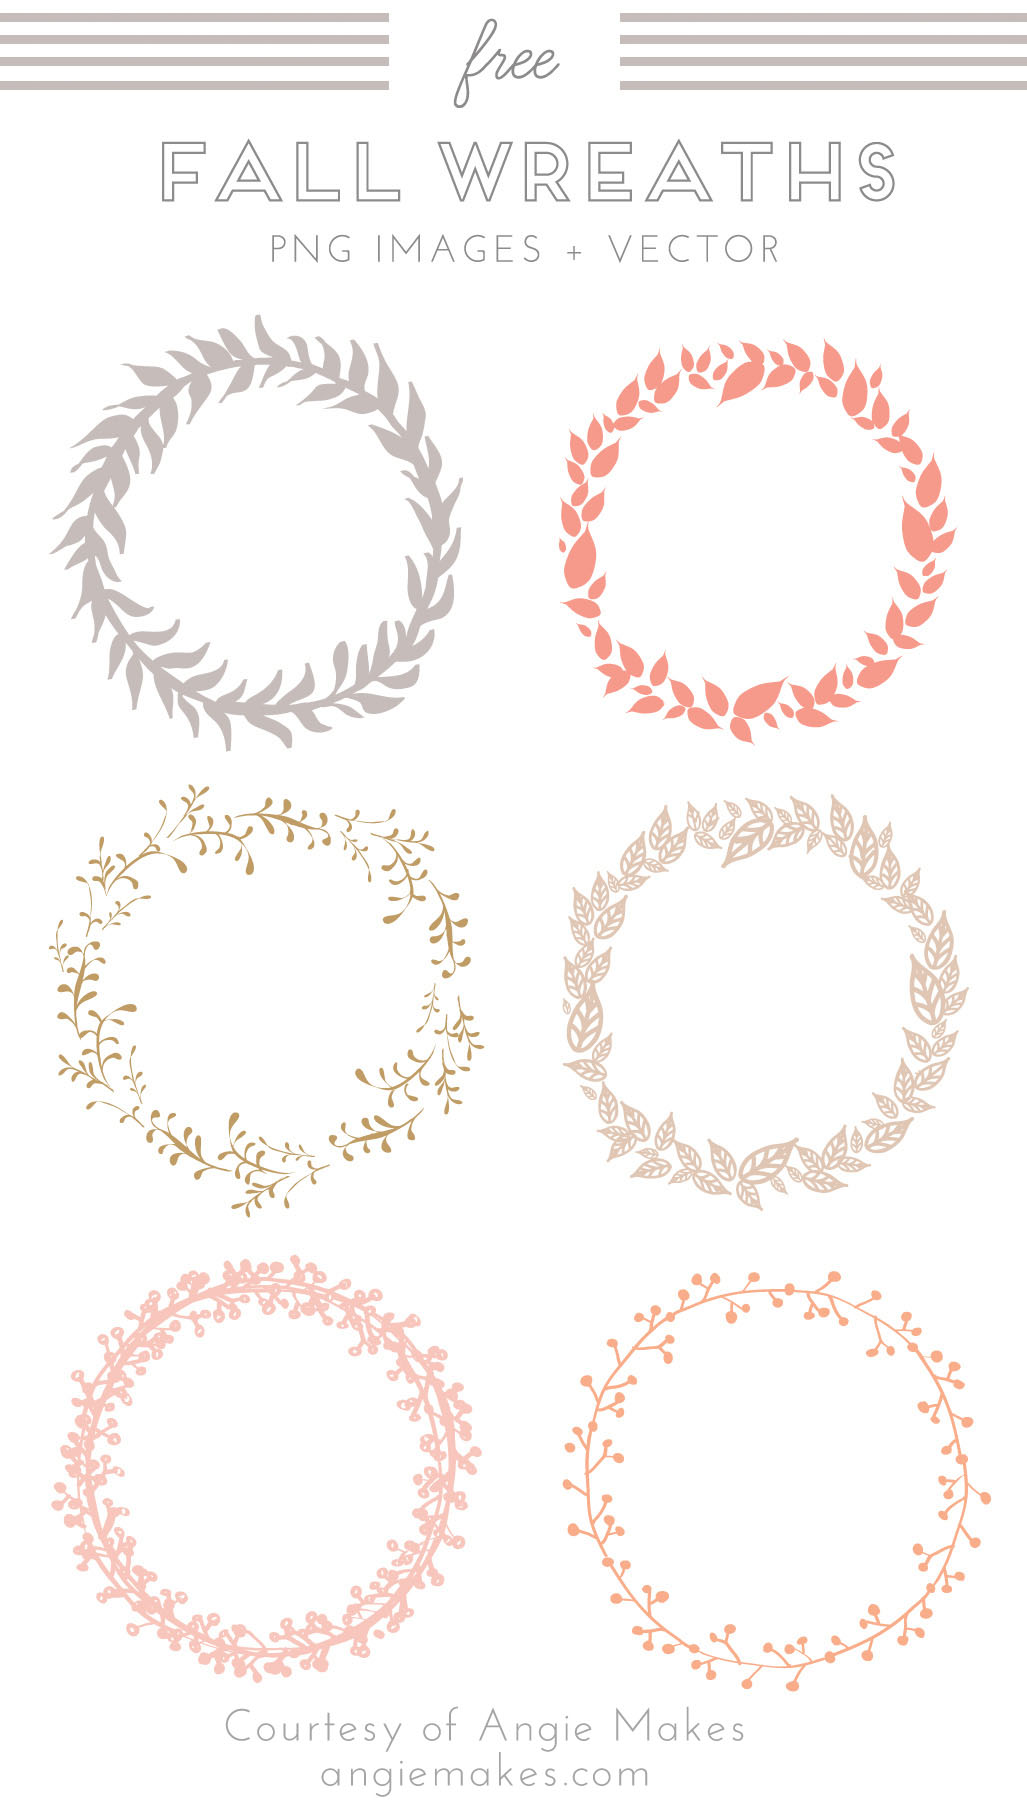 Free Wedding Wreath Clipart.